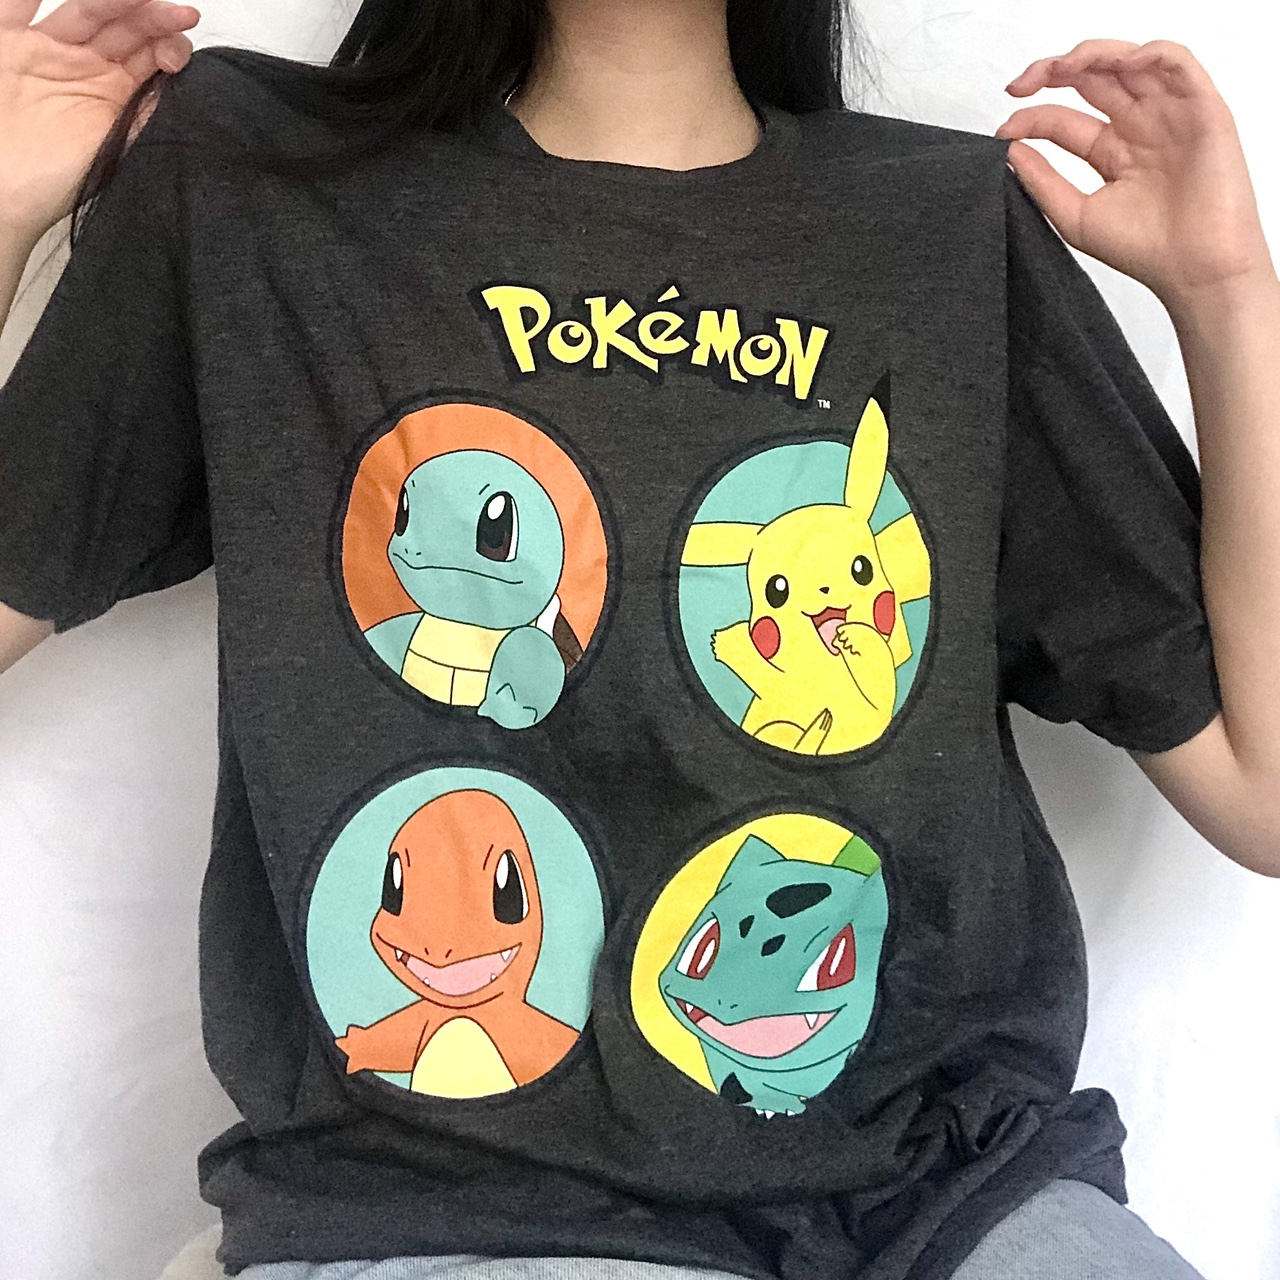 catch em' all in this Pokémon gray graphic tee